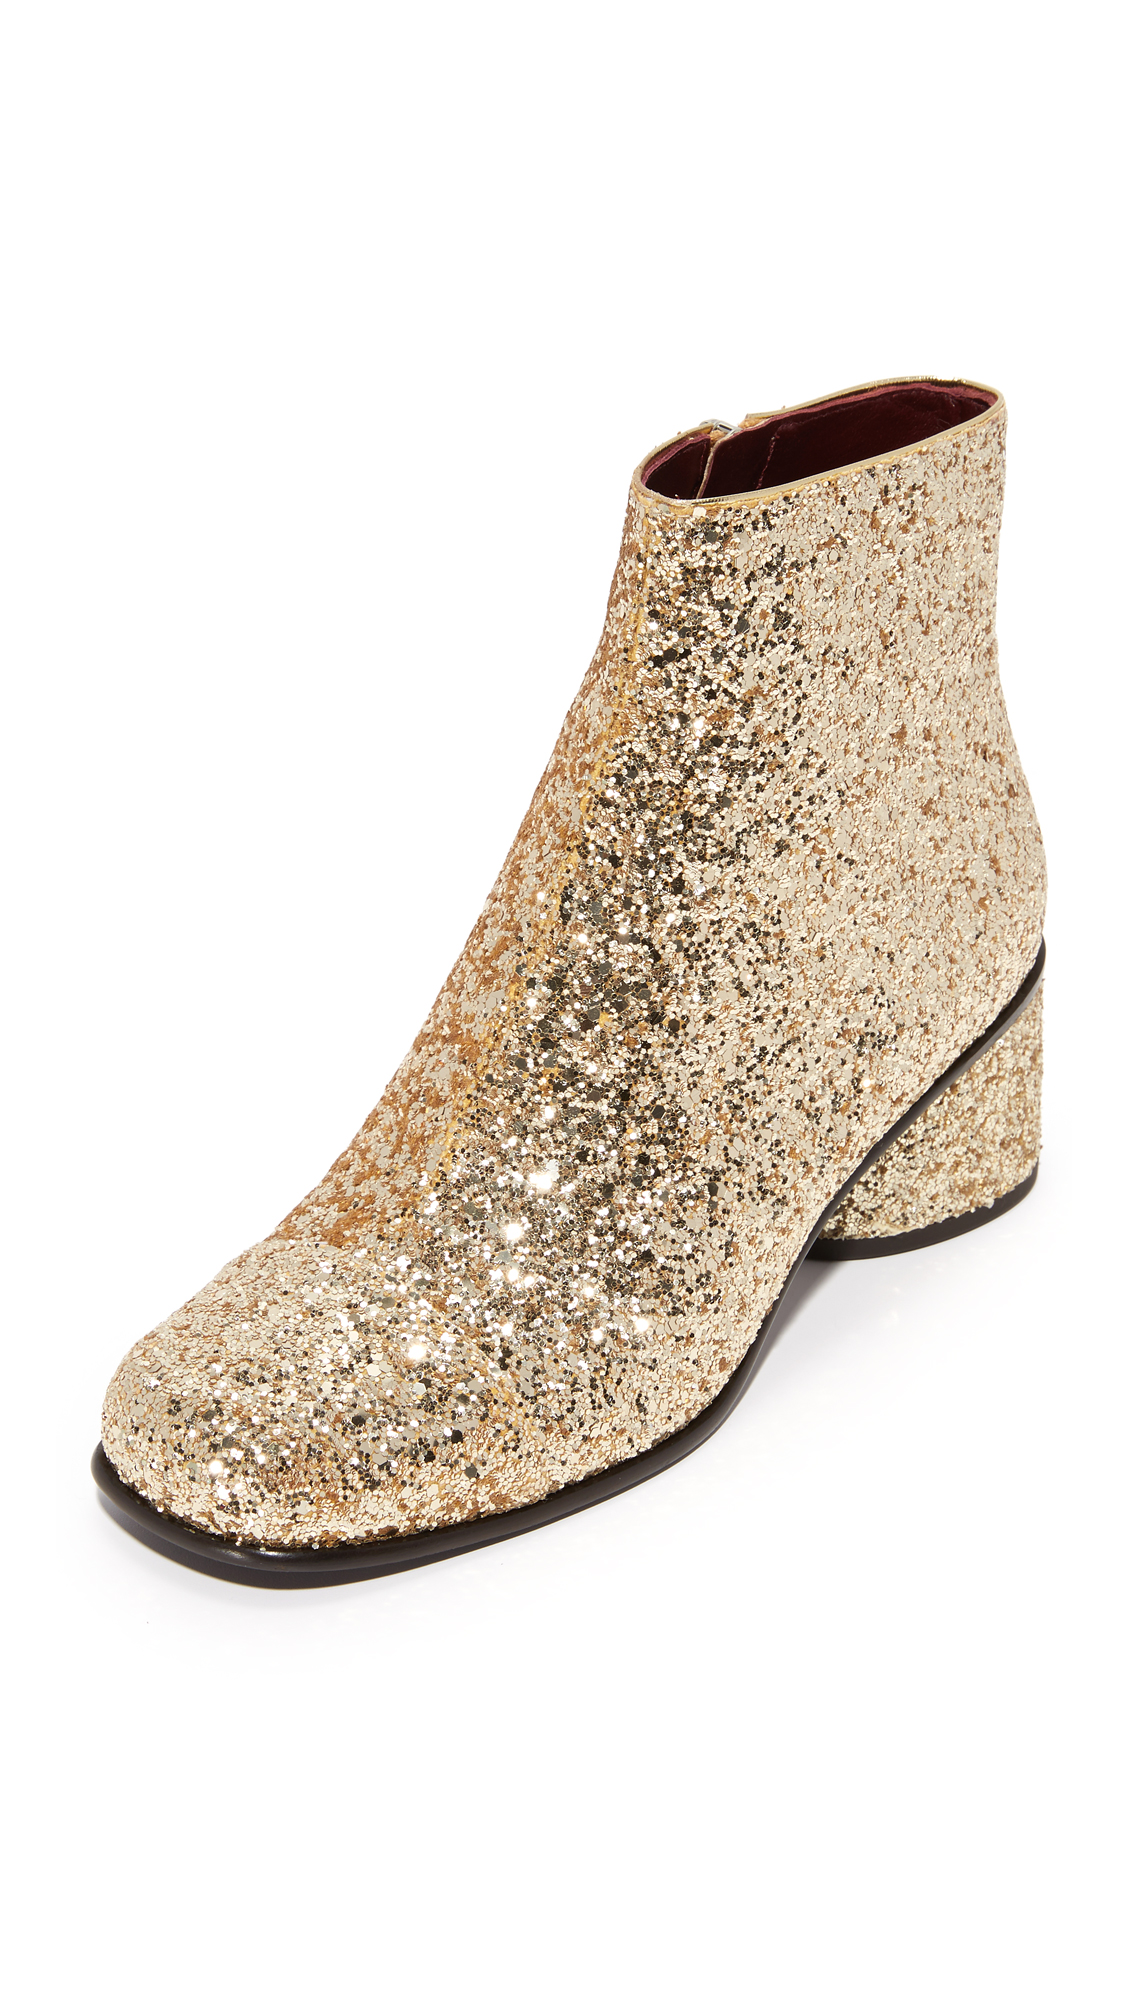 Marc Jacobs Camilla Ankle Booties - Gold